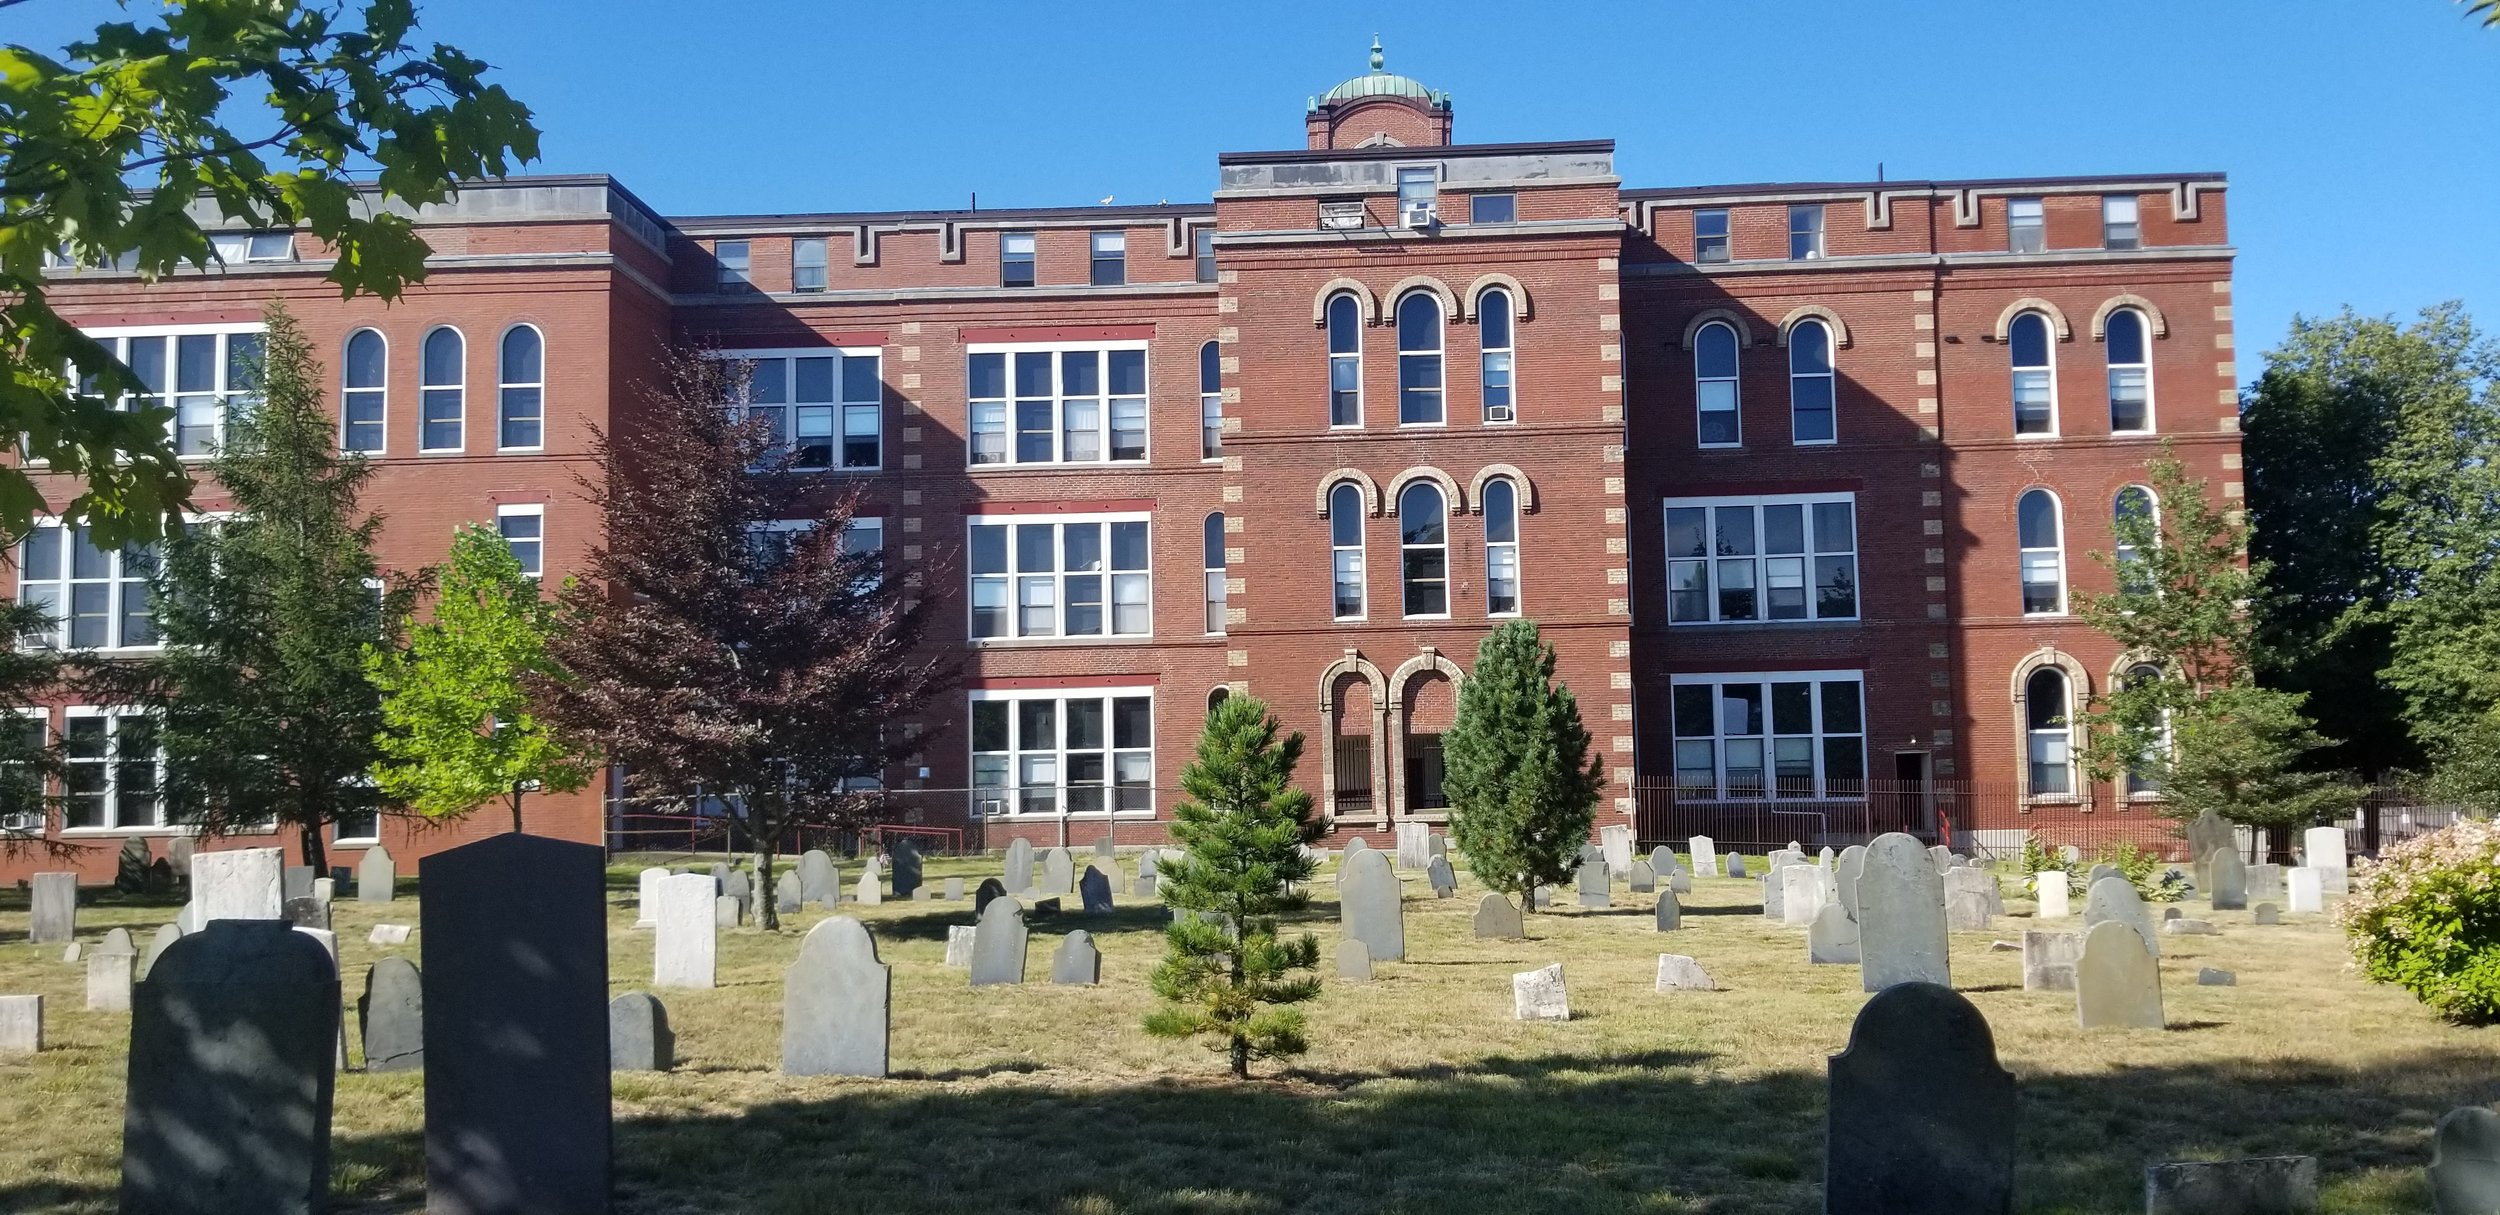 Old North School, which is now an Old Folks home, not sure that is nice seeing as it sits next to a cemetery.